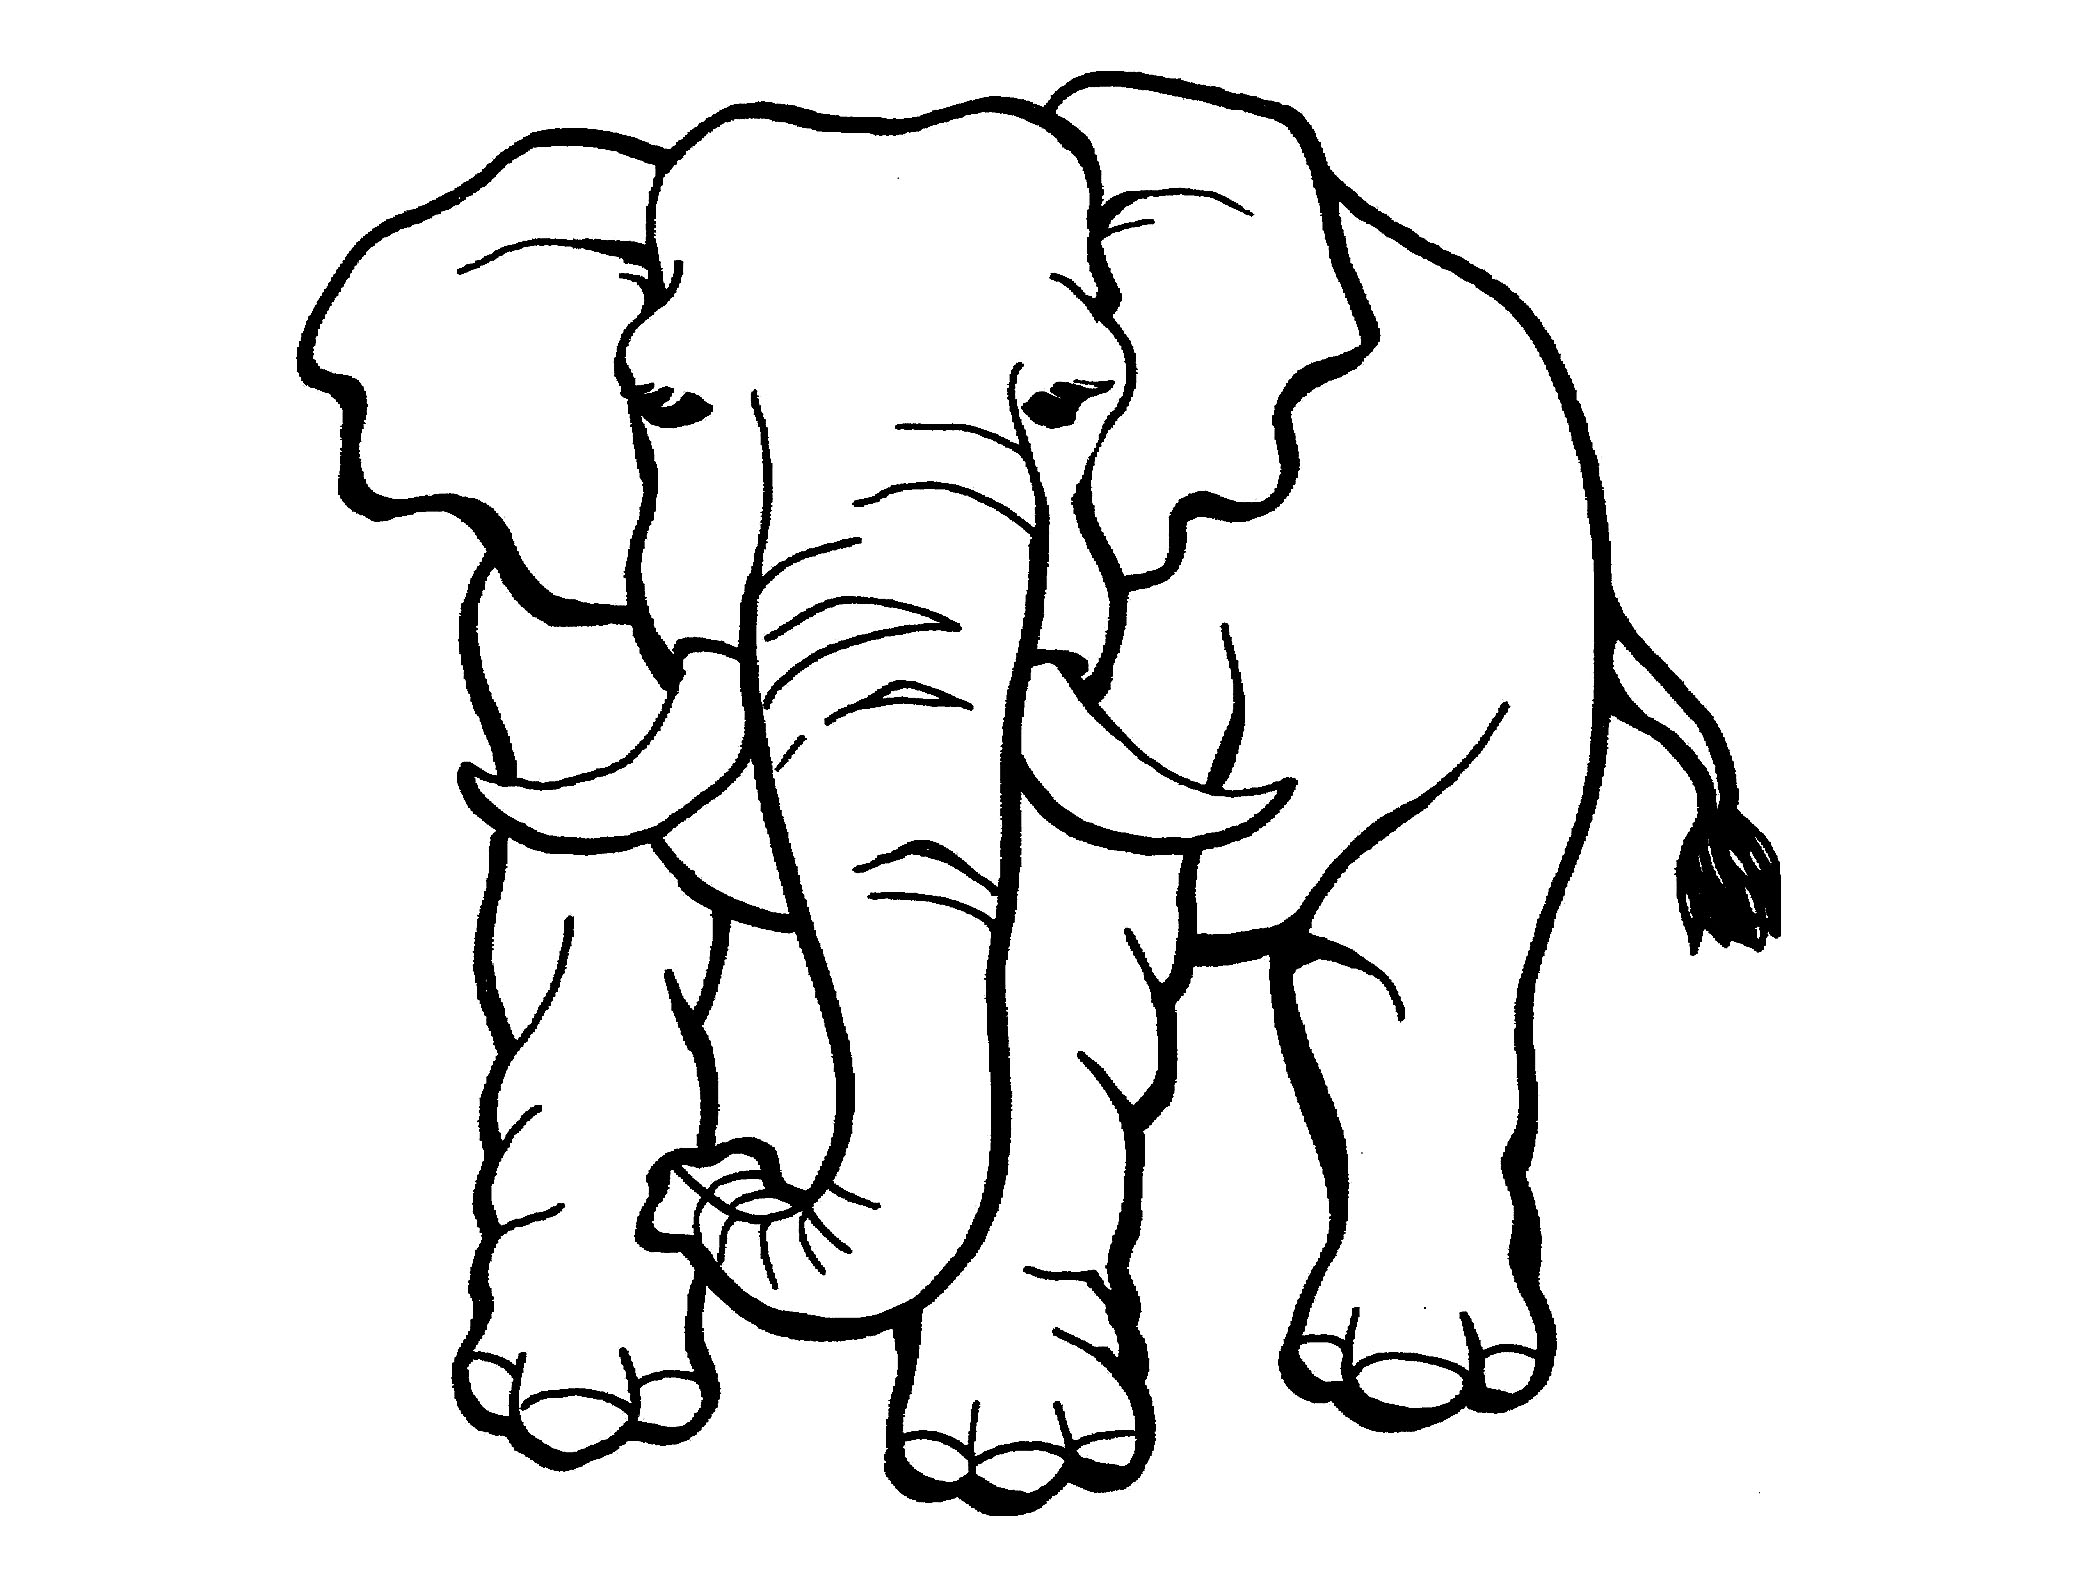 free printable elephant pictures coloring page elephant free printable downloads from free pictures elephant printable